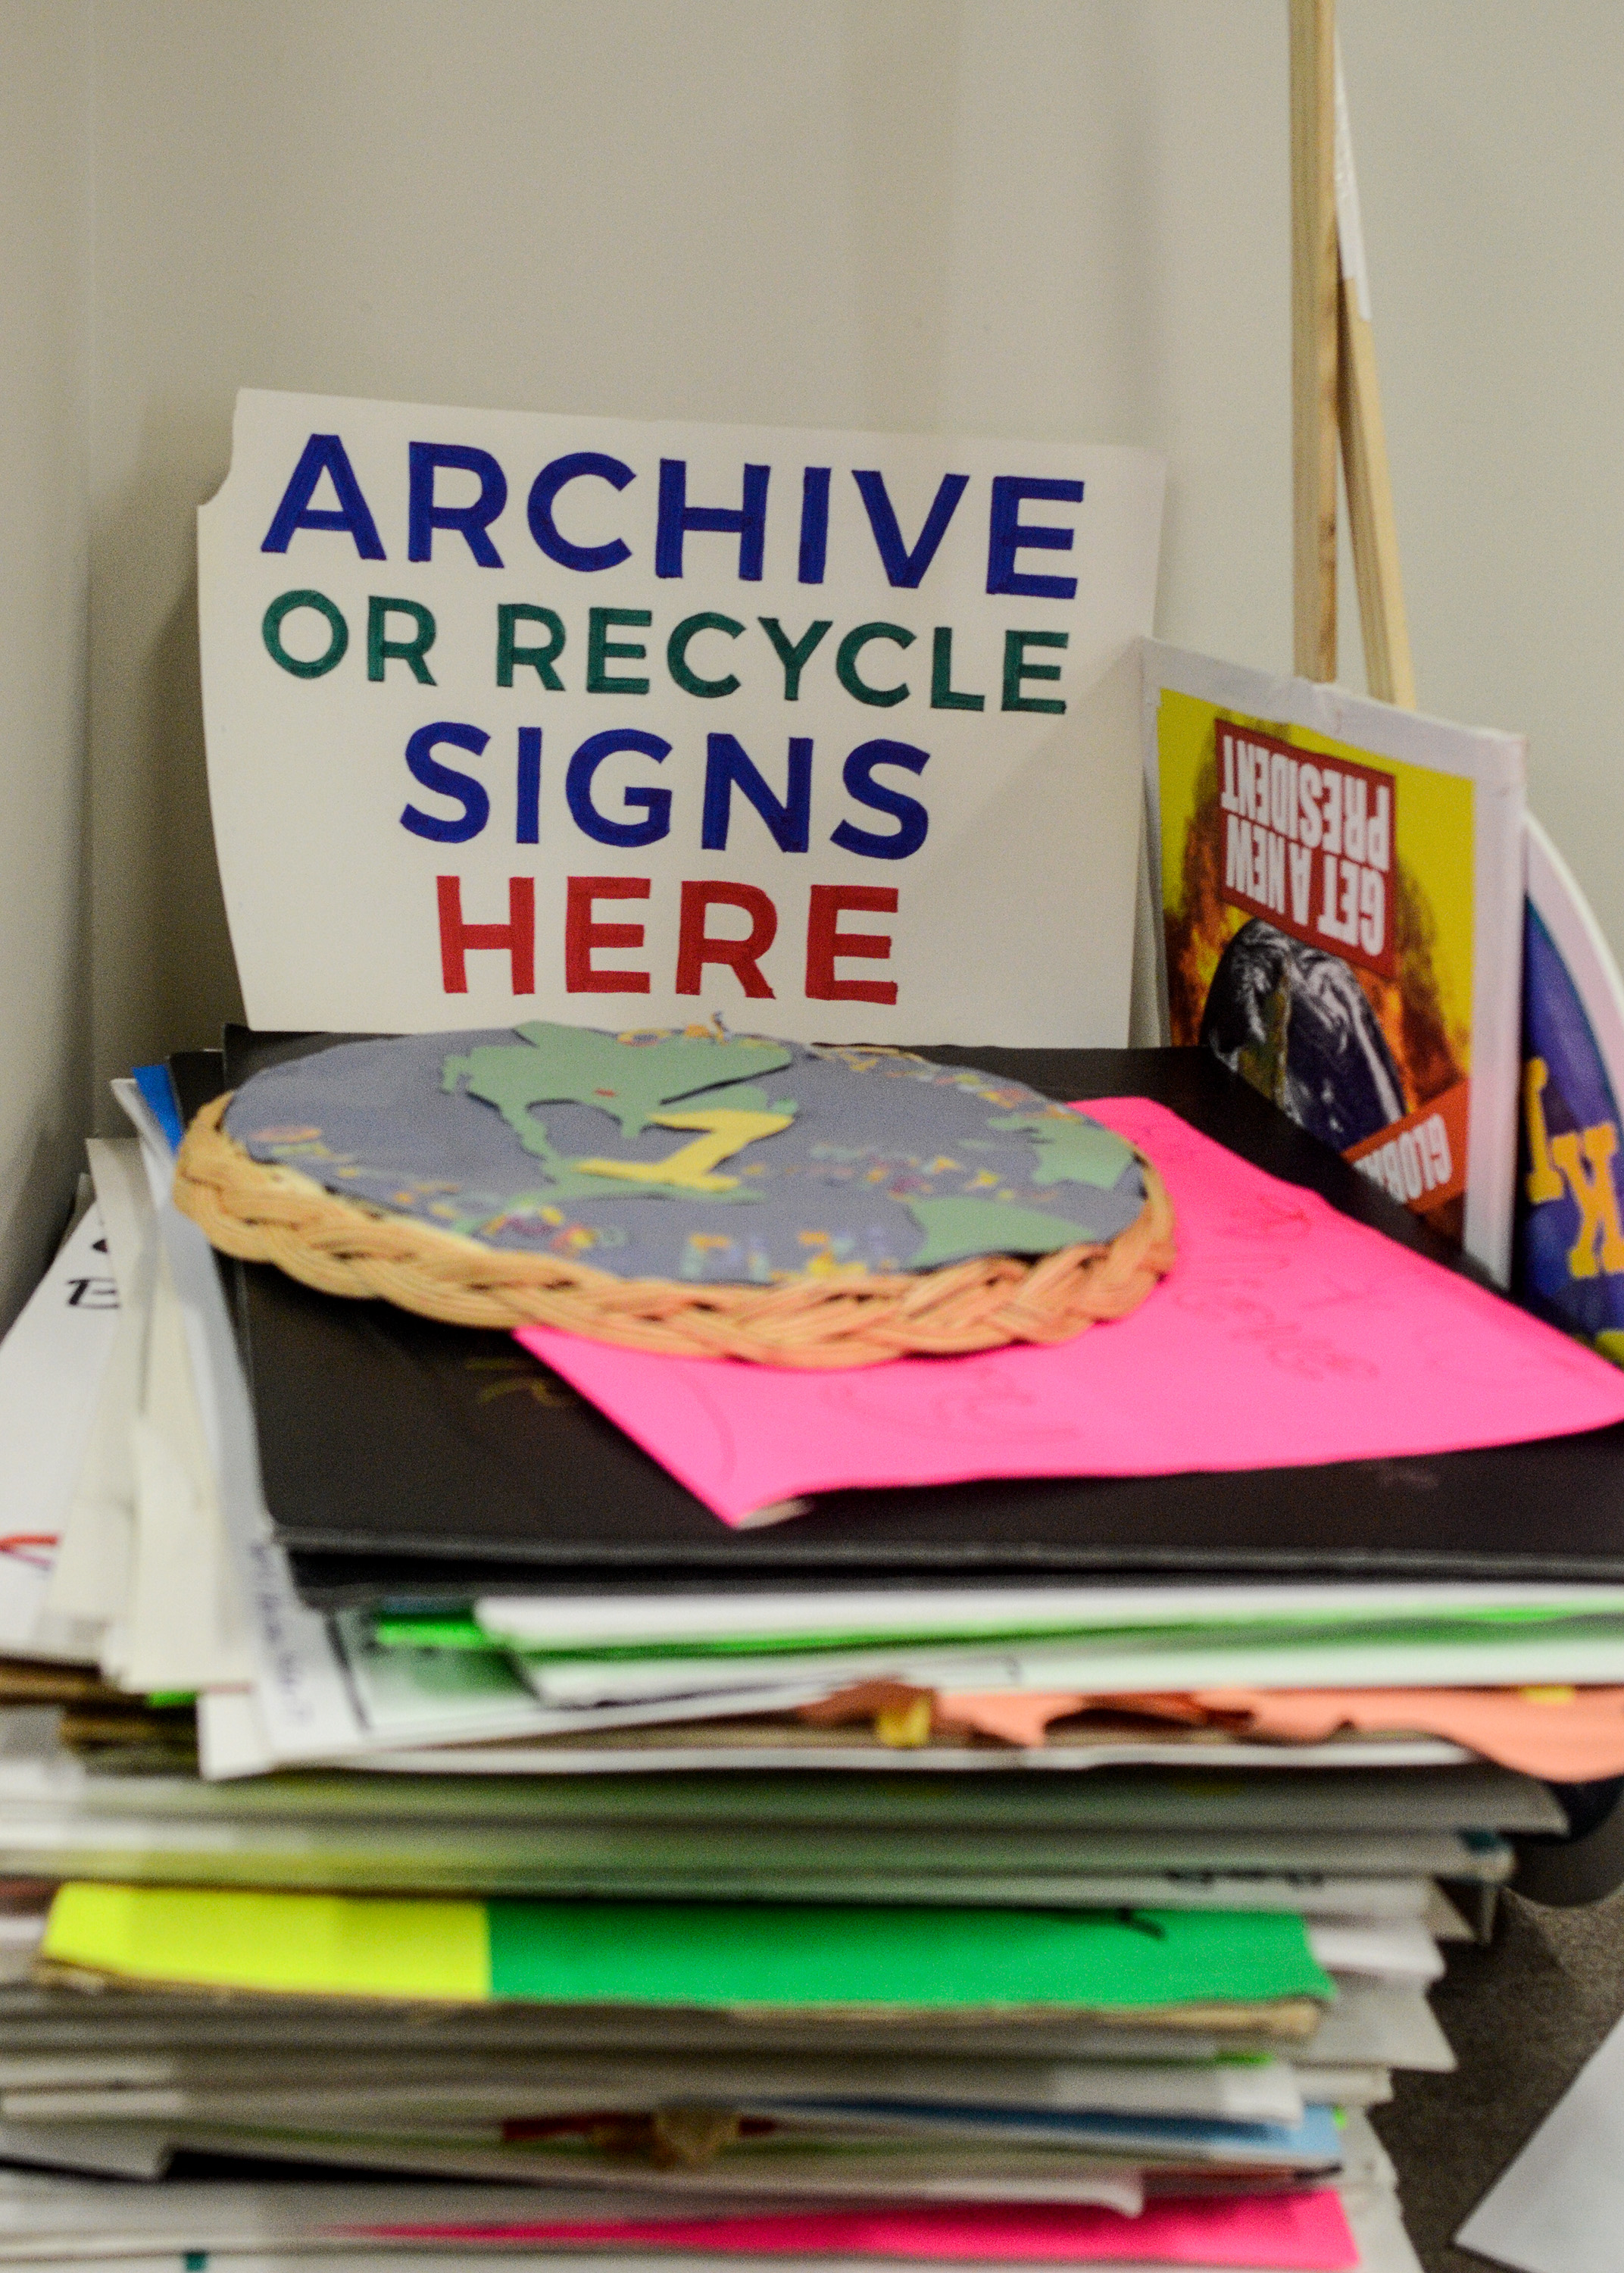 """Image: A stack of multicolored poster board signs is shown. A sign that reads """"Archive or Recycle Signs Here"""" stands above the stack. One sign is the map of the world pasted onto a woven basket. Two signs with sticks attached can be seen to the right. Image by William Camargo."""